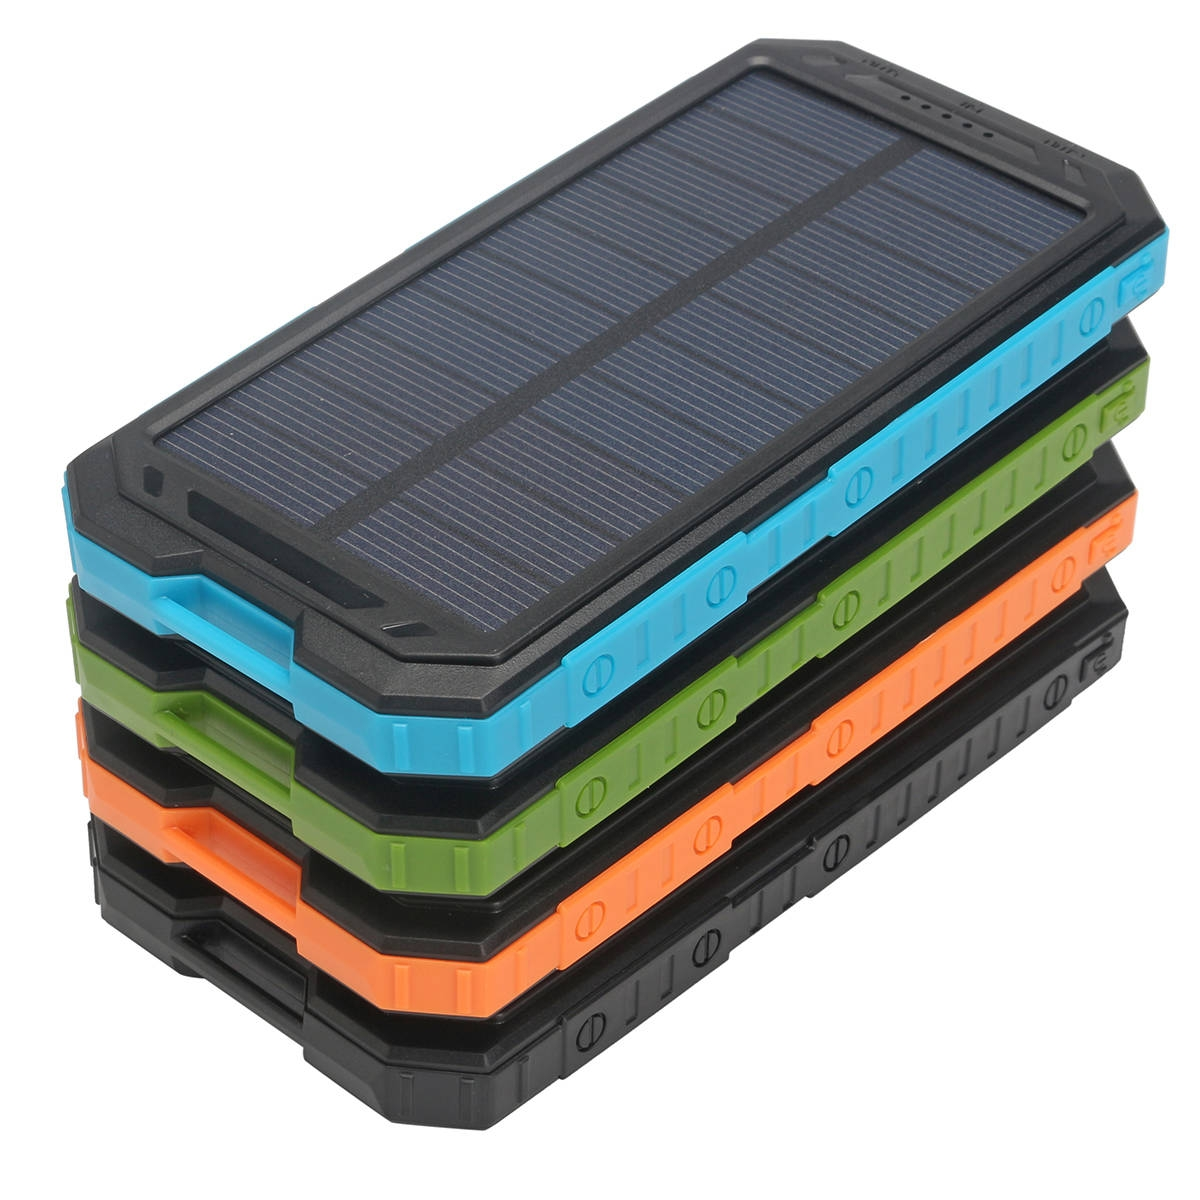 universal power bank portable dual usb waterproof solar tablette accent fast orange decor accessories inexpensive tablecloths patio tiles chairs winnipeg farmhouse table legs